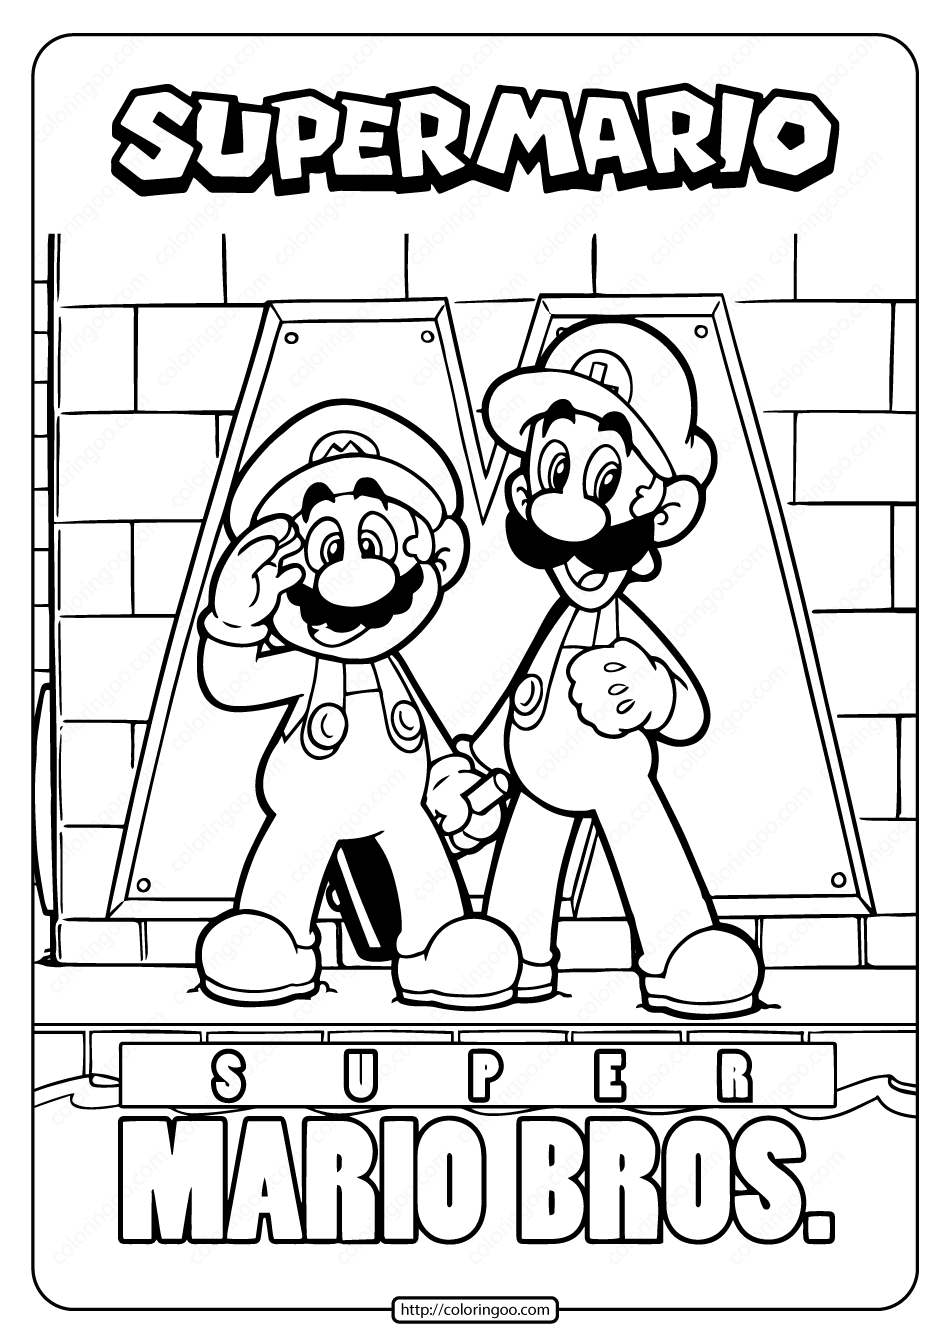 Free Printable Super Mario Bros Coloring Page